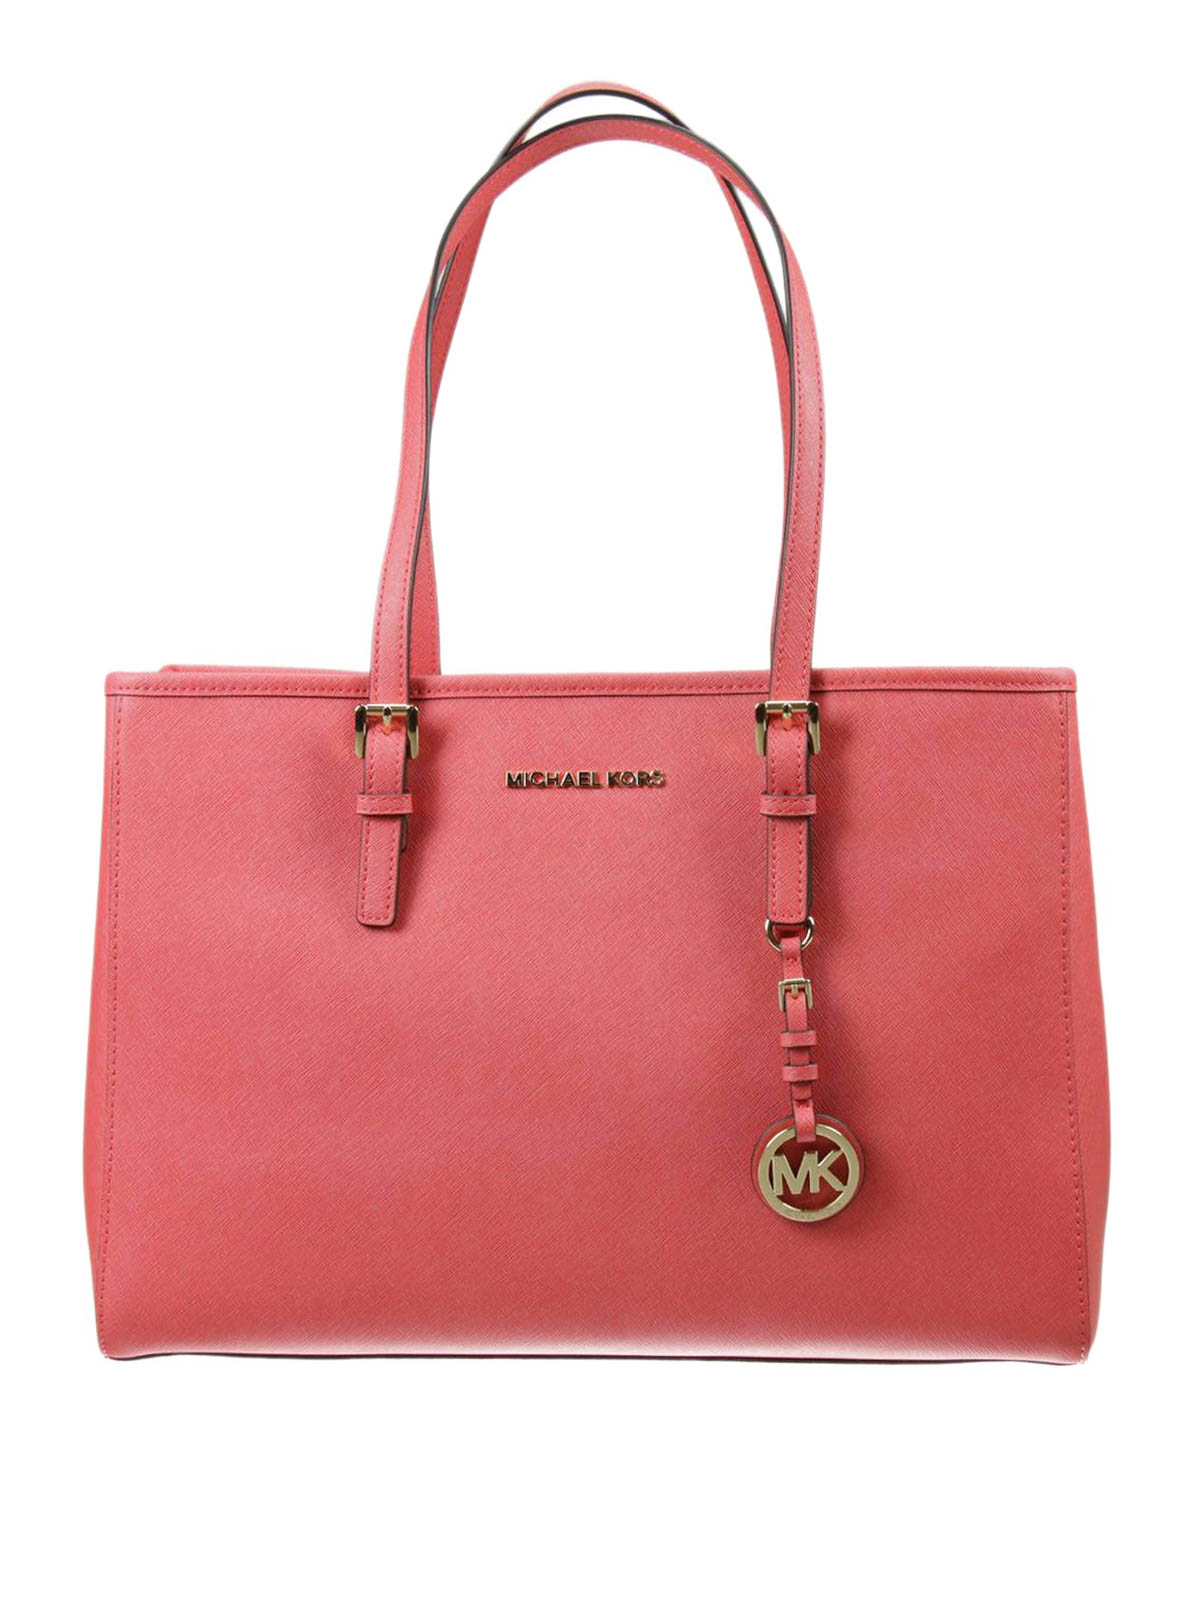 Michael Kors Jet Set Tote Laukku : Jet set travel ew large tote by michael kors totes bags